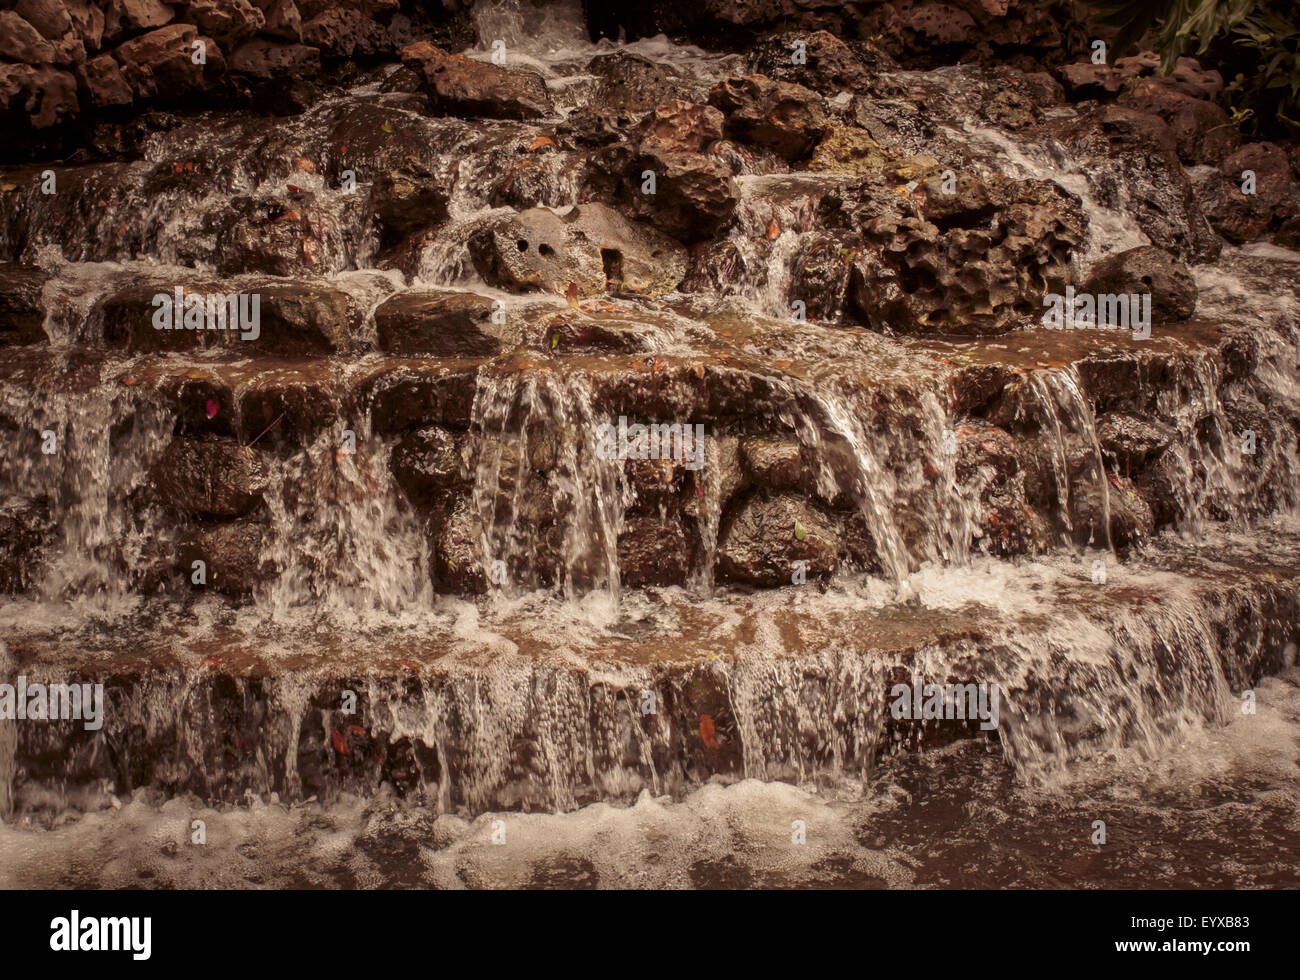 Water gently cascading over layers of rocks into a shallow pond; in sepia tones Stock Photo